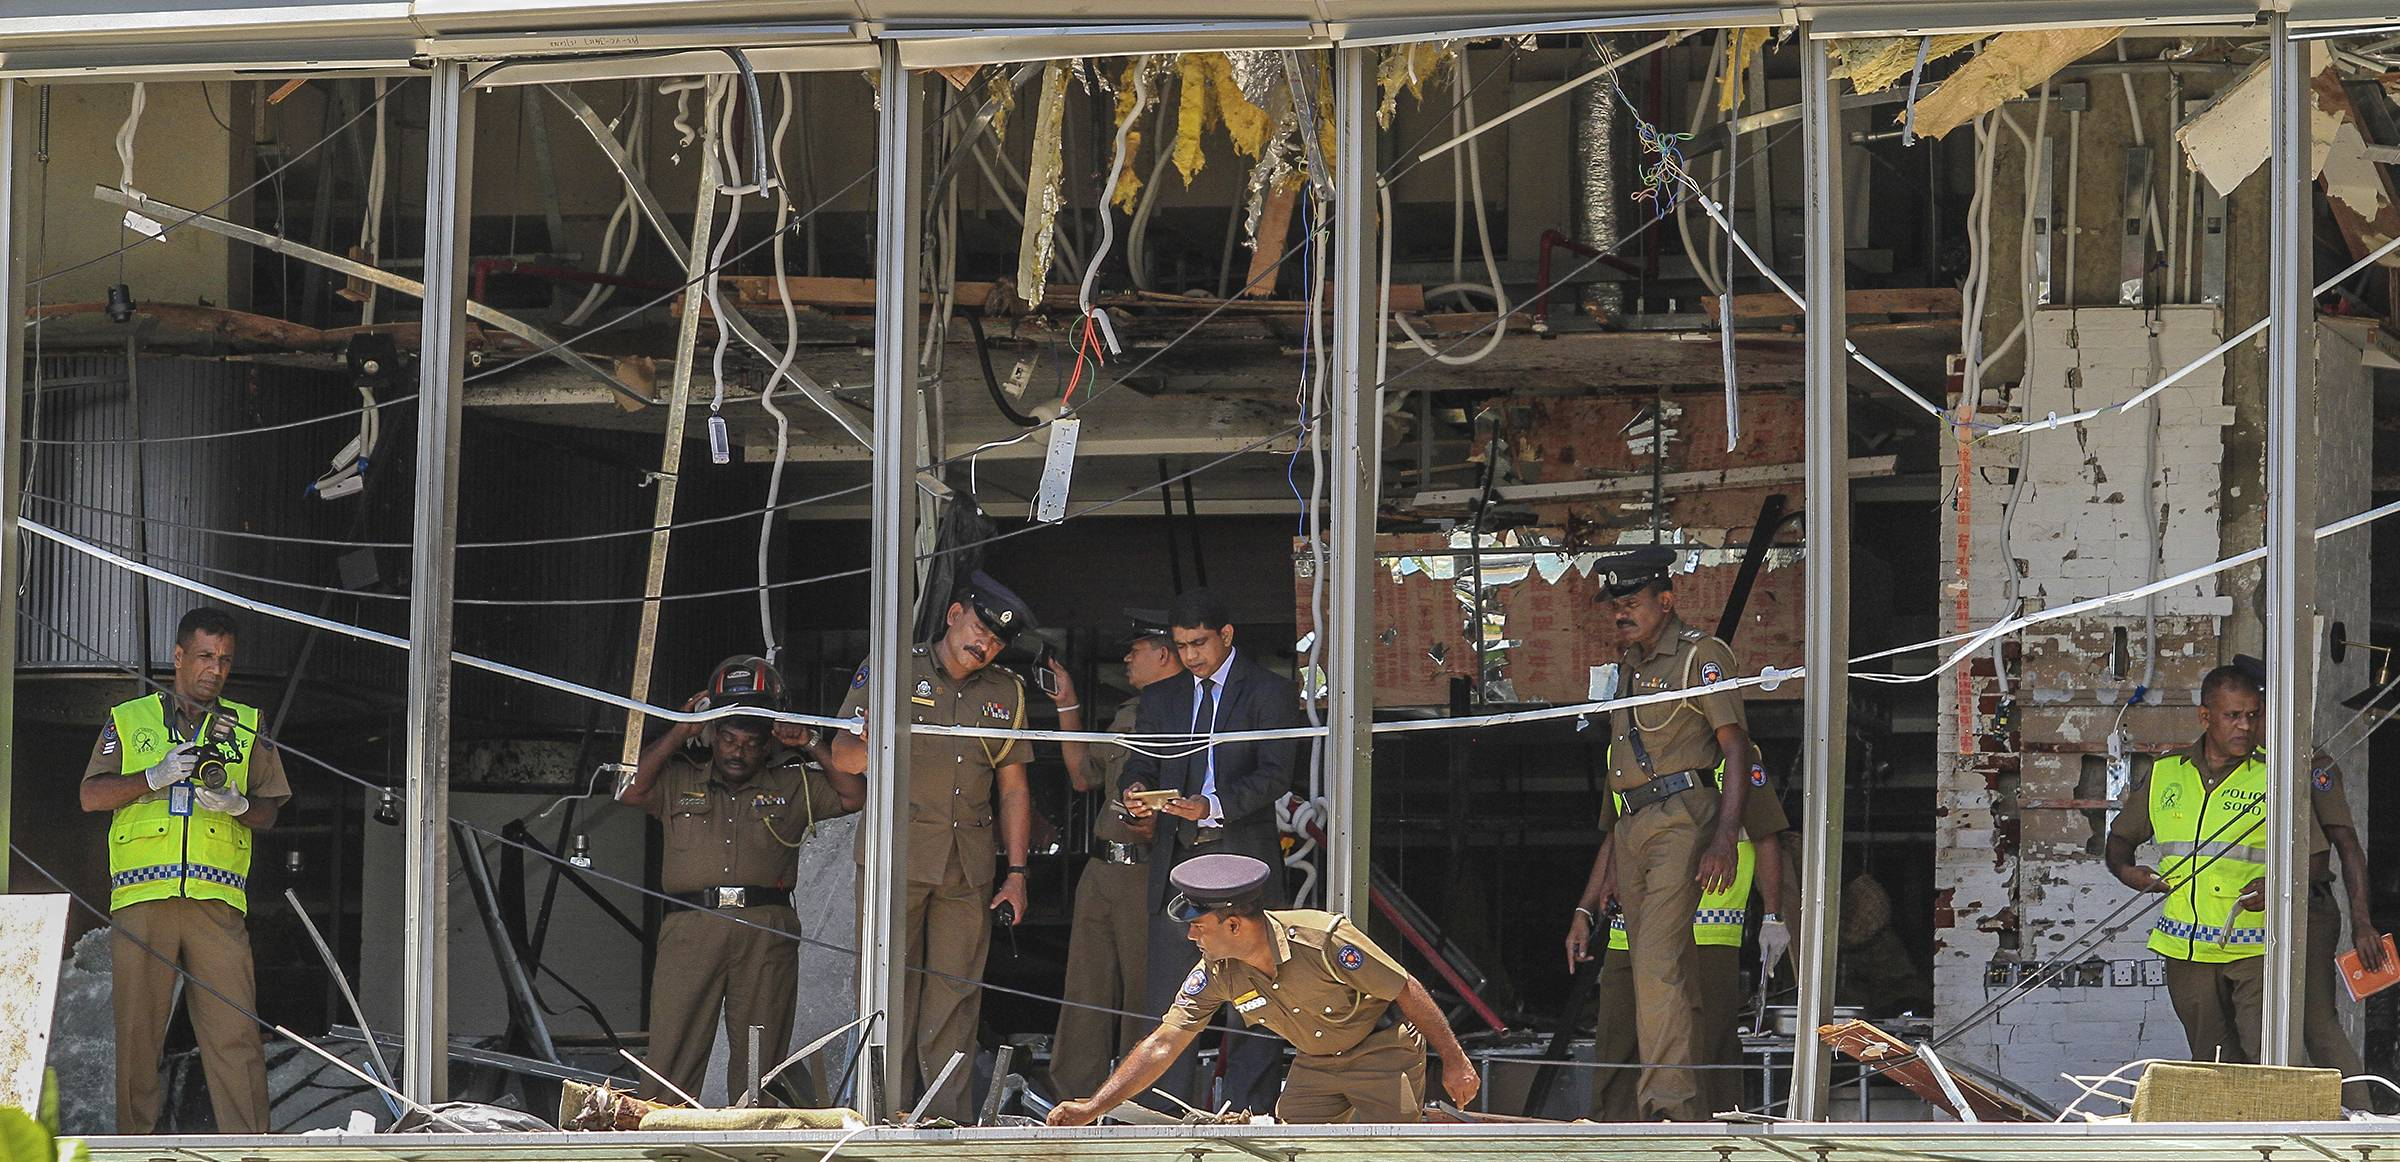 A Sri Lankan Police officer inspects a blast spot Sunday at the Shangri-la hotel in Colombo, Sri Lanka. More than hundred were killed and hundreds more hospitalized with injuries from eight blasts that rocked churches and hotels in and just outside of Sri Lanka's capital on Easter Sunday, officials said, the worst violence to hit the South Asian country since its civil war ended a decade ago.